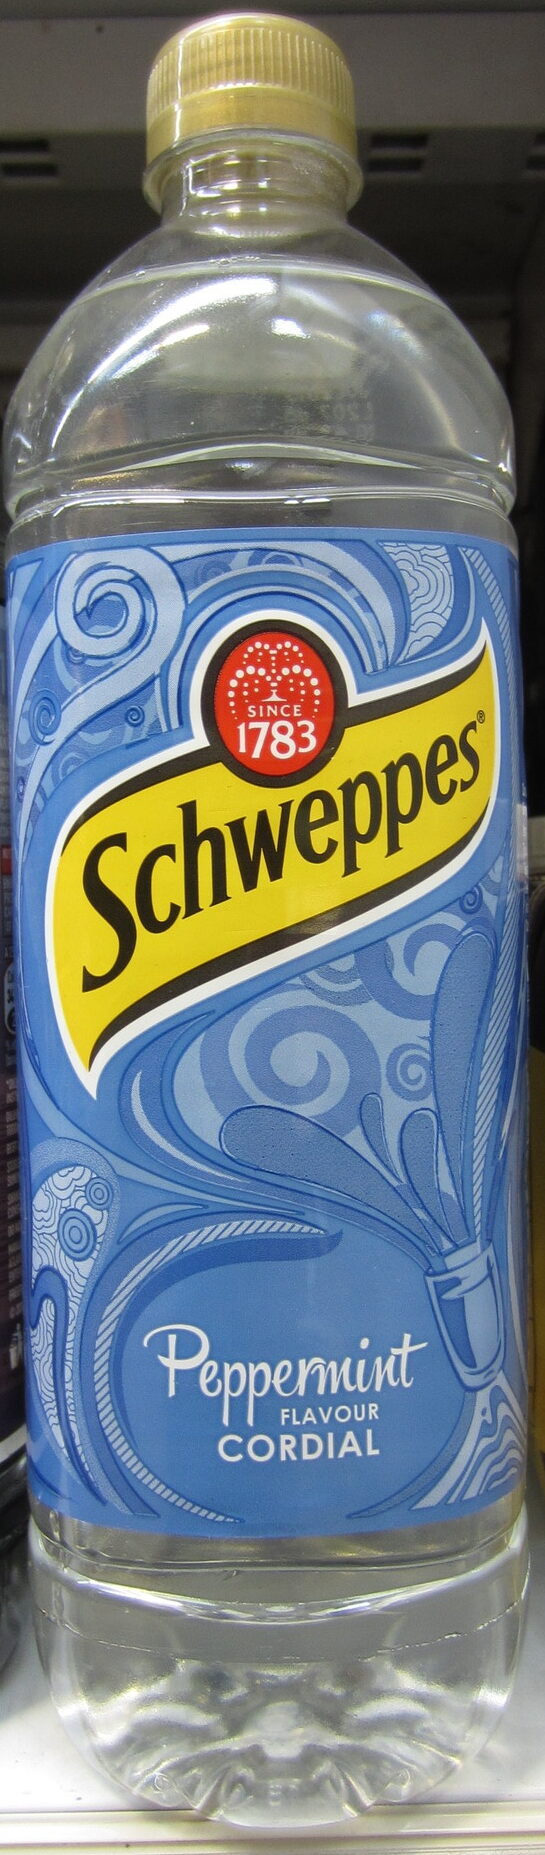 Schweppes Peppermint Cordial - Product